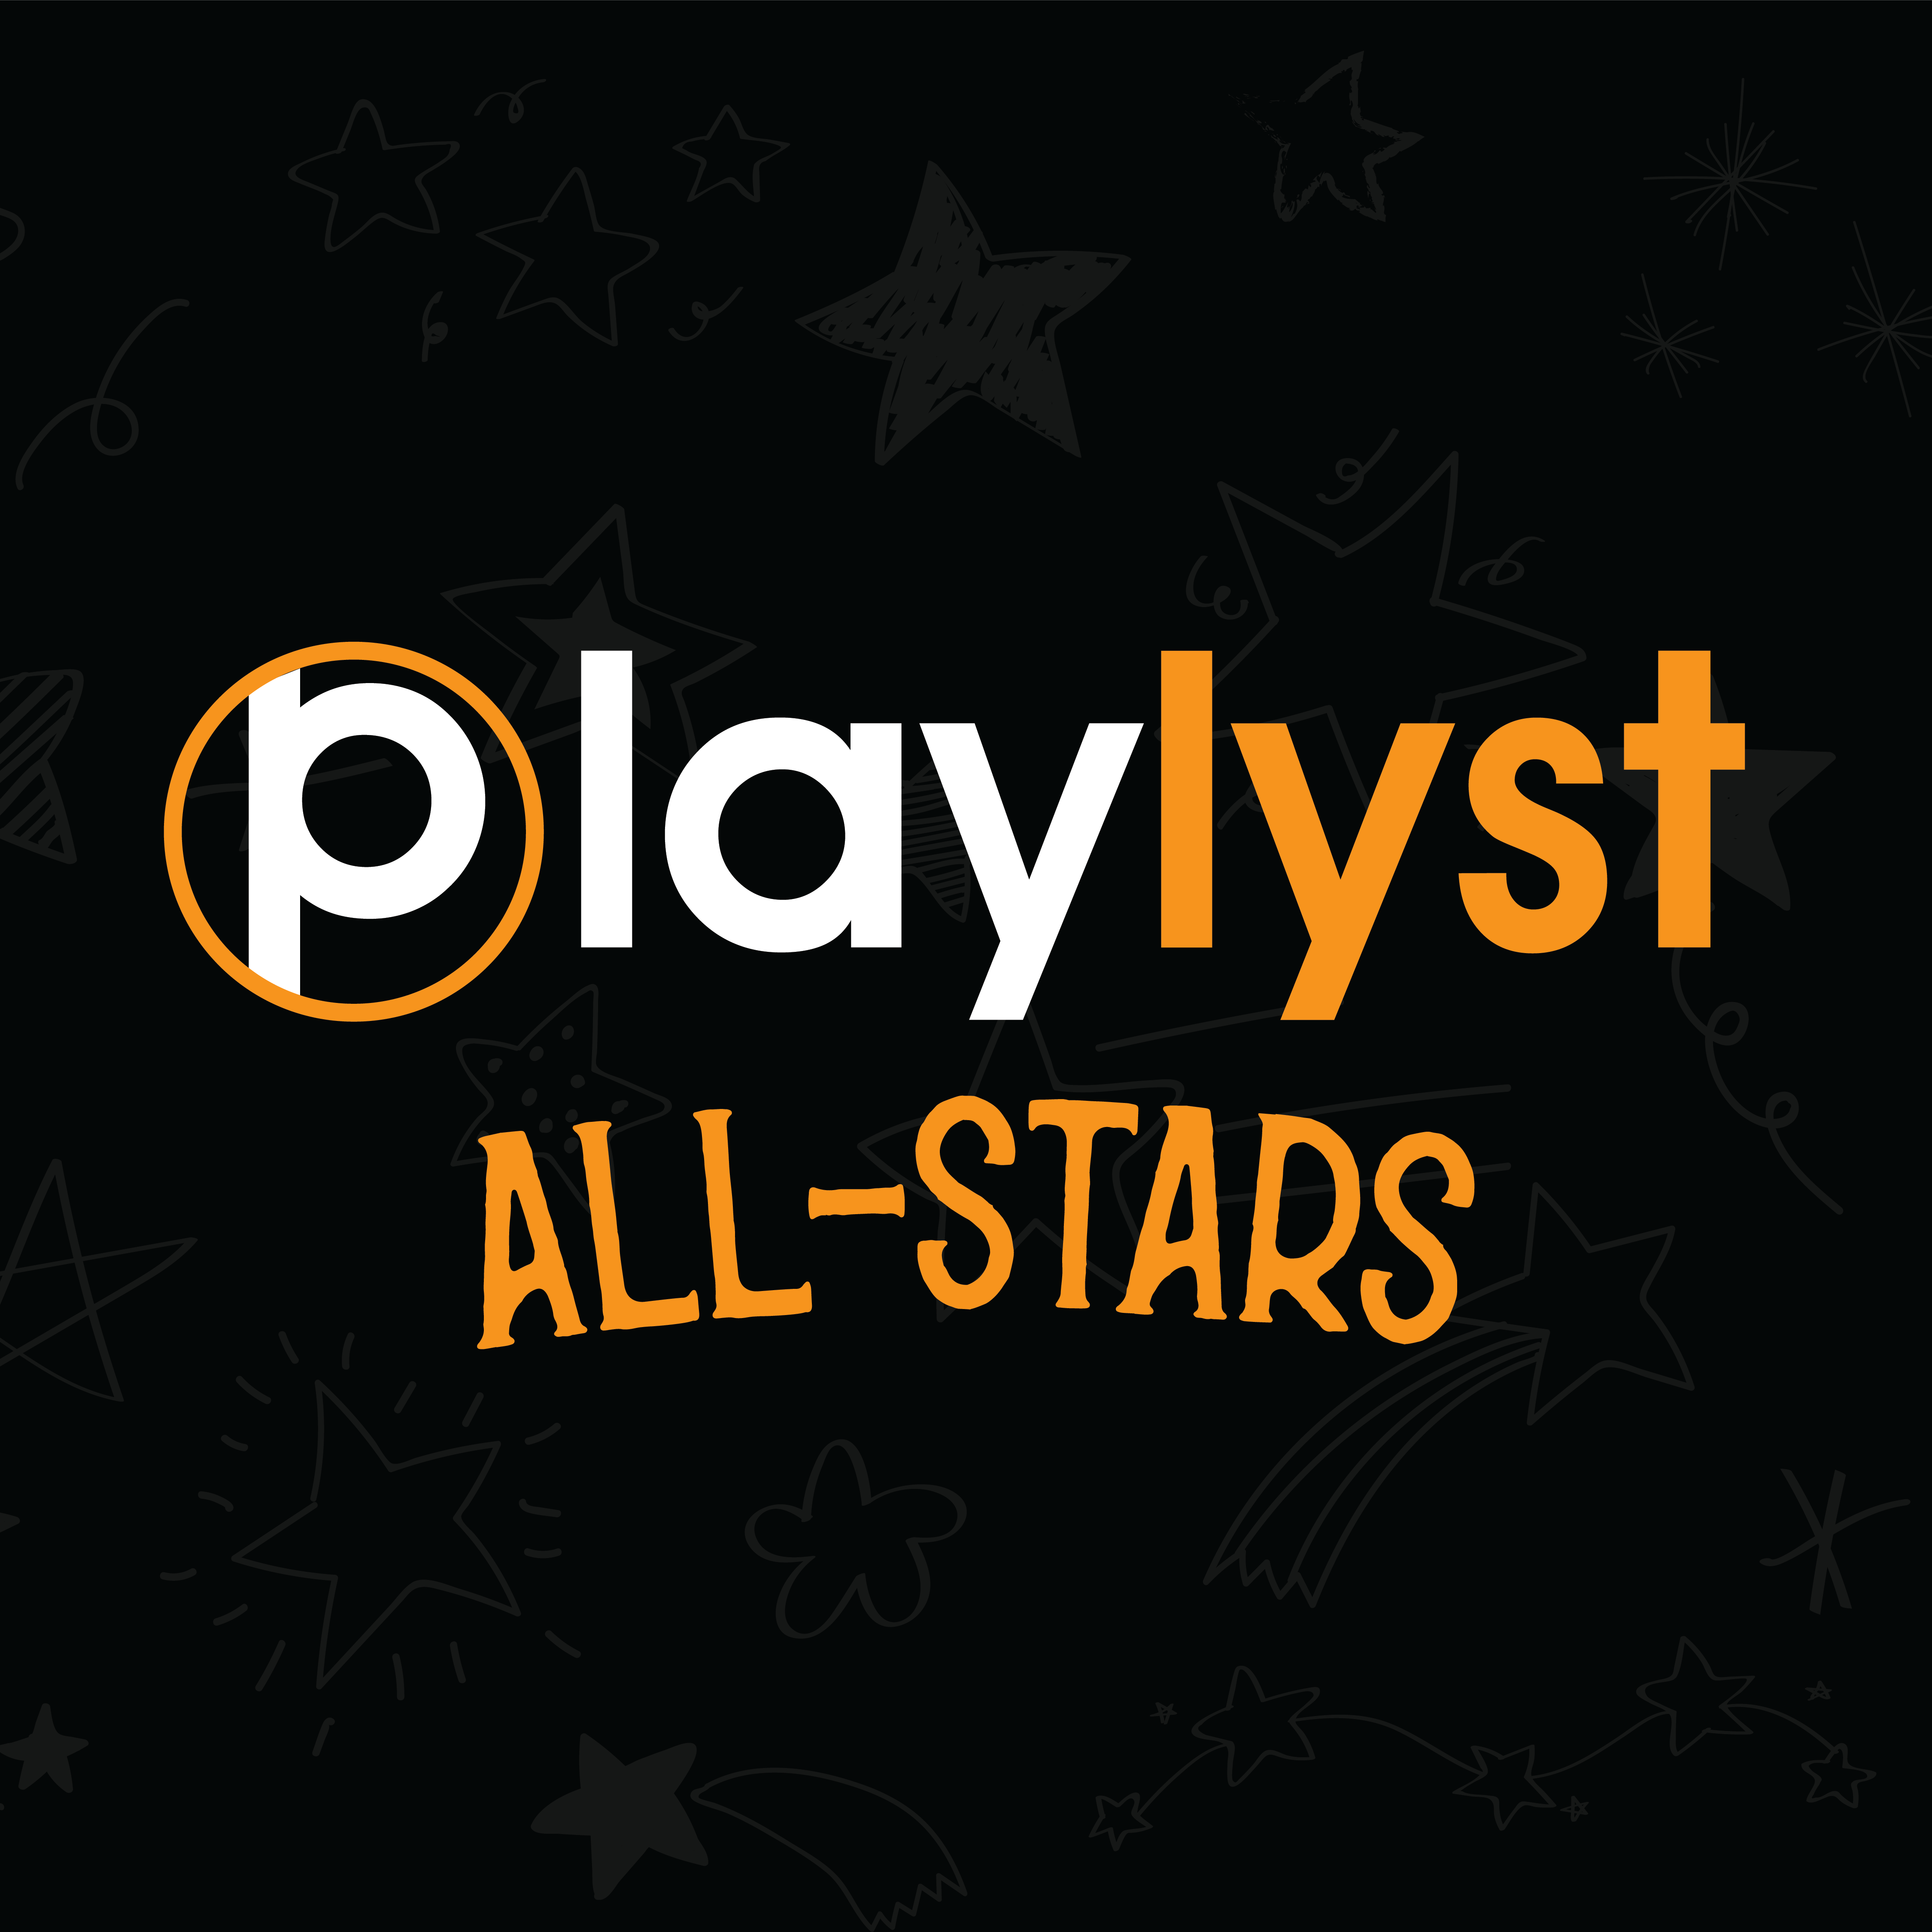 Playlyst Studio - A Podcasting Studio, helping authors, coaches, influencers launch their own podcast channel. Podcast hosting, podcast cover art, podcast service, podcast audio and video editing, playlyst, south africa, uk, usa, europe, canada